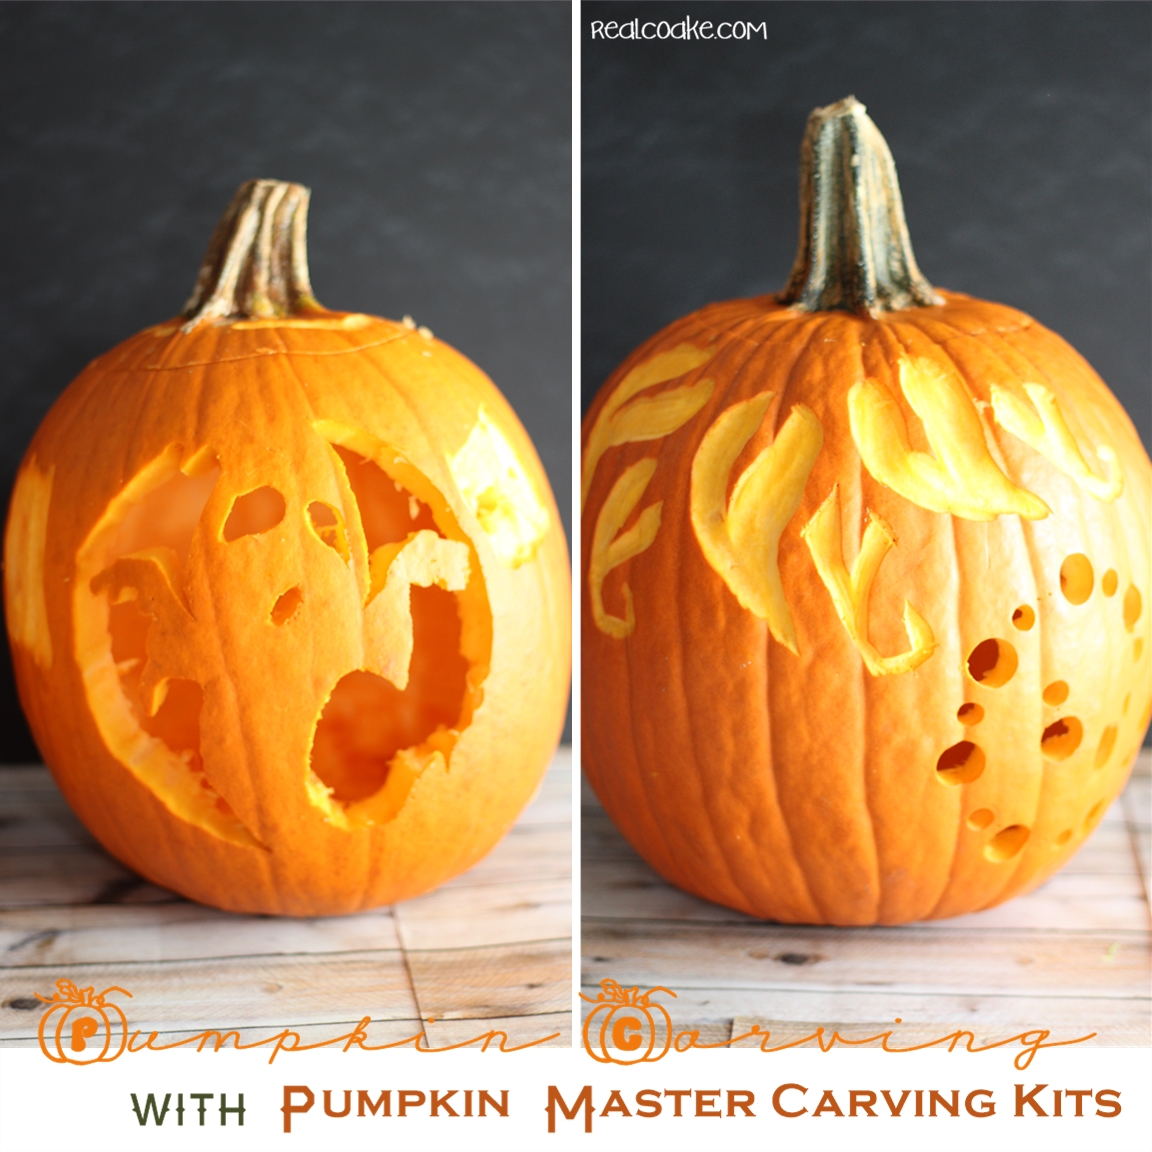 Pumpkin Carving Family Fun The Real Thing With The Coake